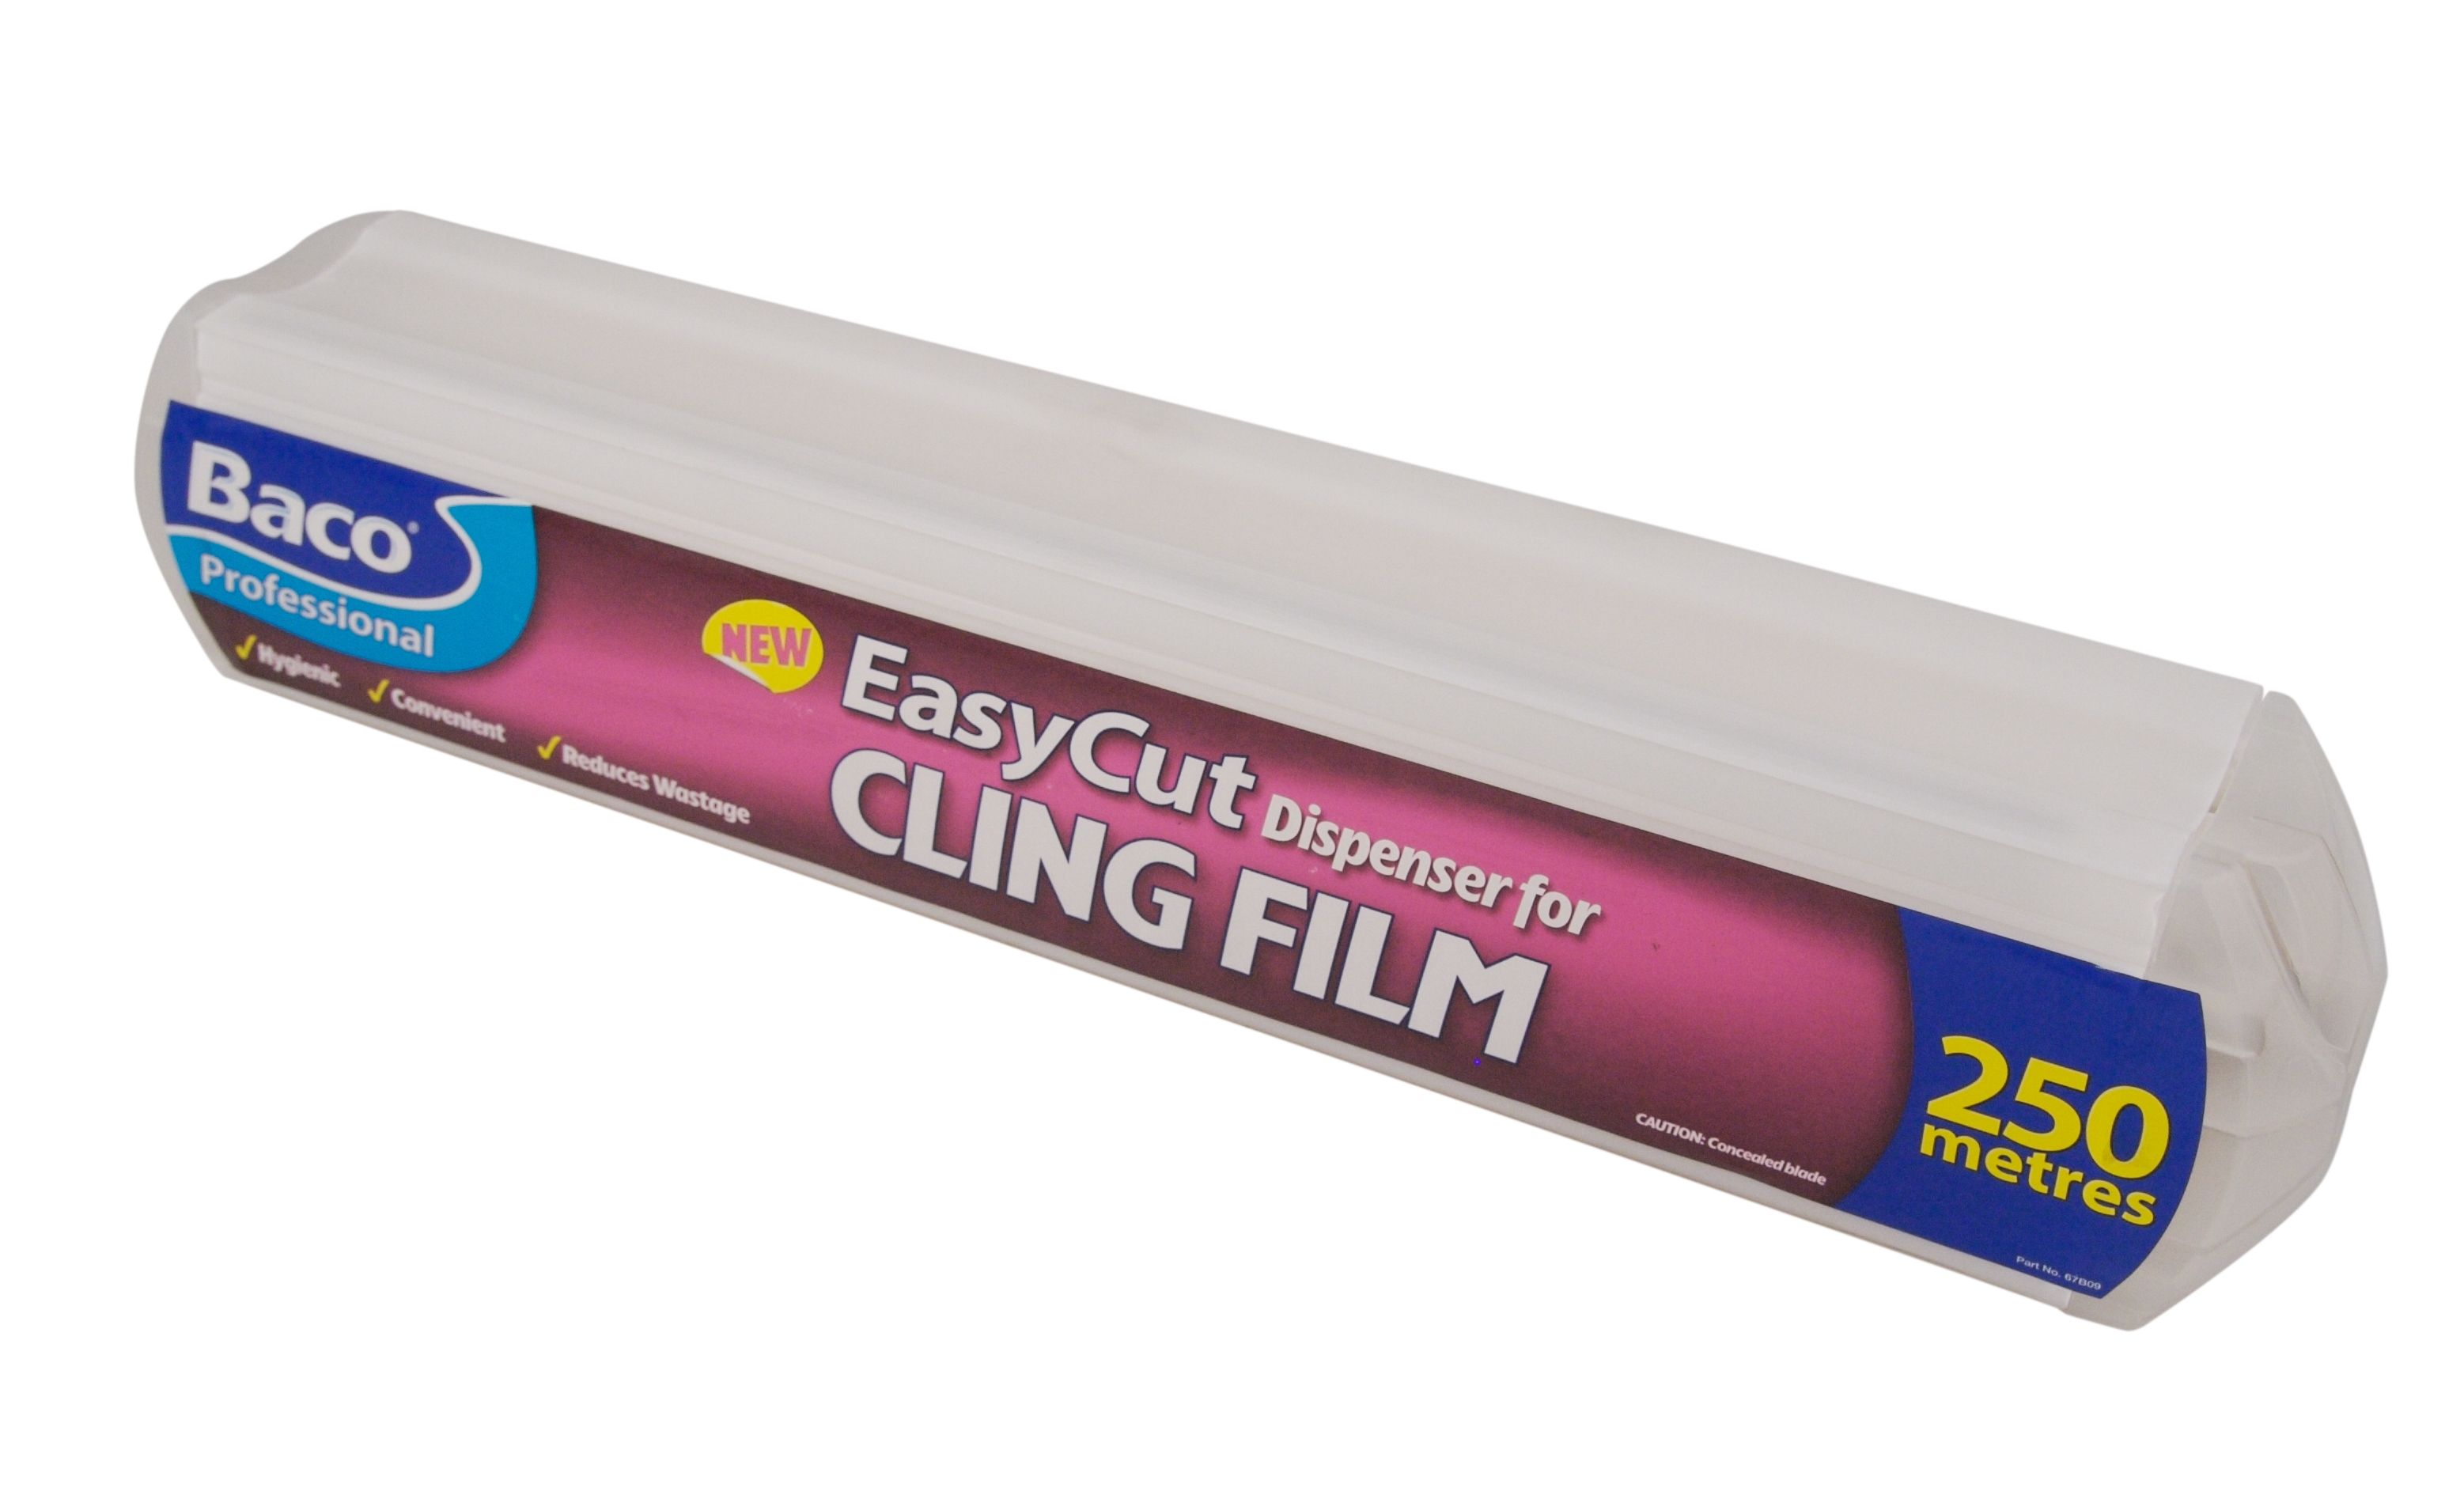 BACO 350MM CLING FILM IN EASY CUT DISPENSER